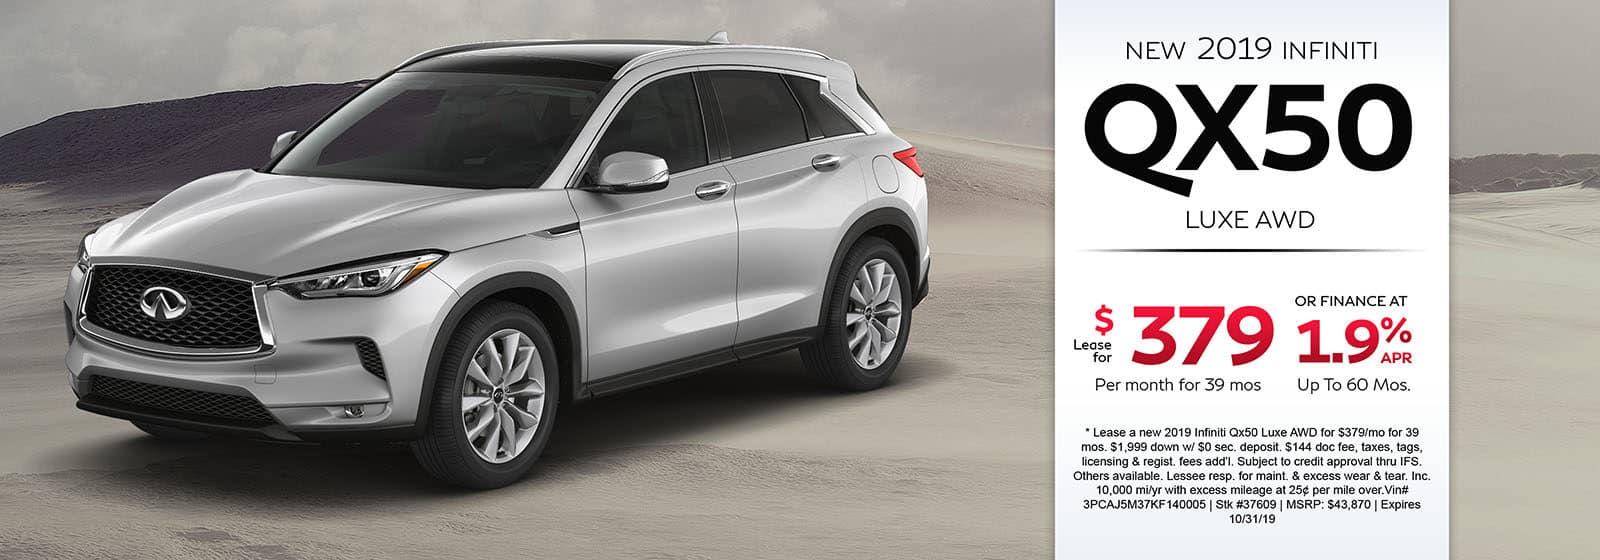 Lease a new 2019 INFINITI QX50 Luxe AWD for $379 a month for 39 months. Or get special 1.9% APR financing for up to 60 months